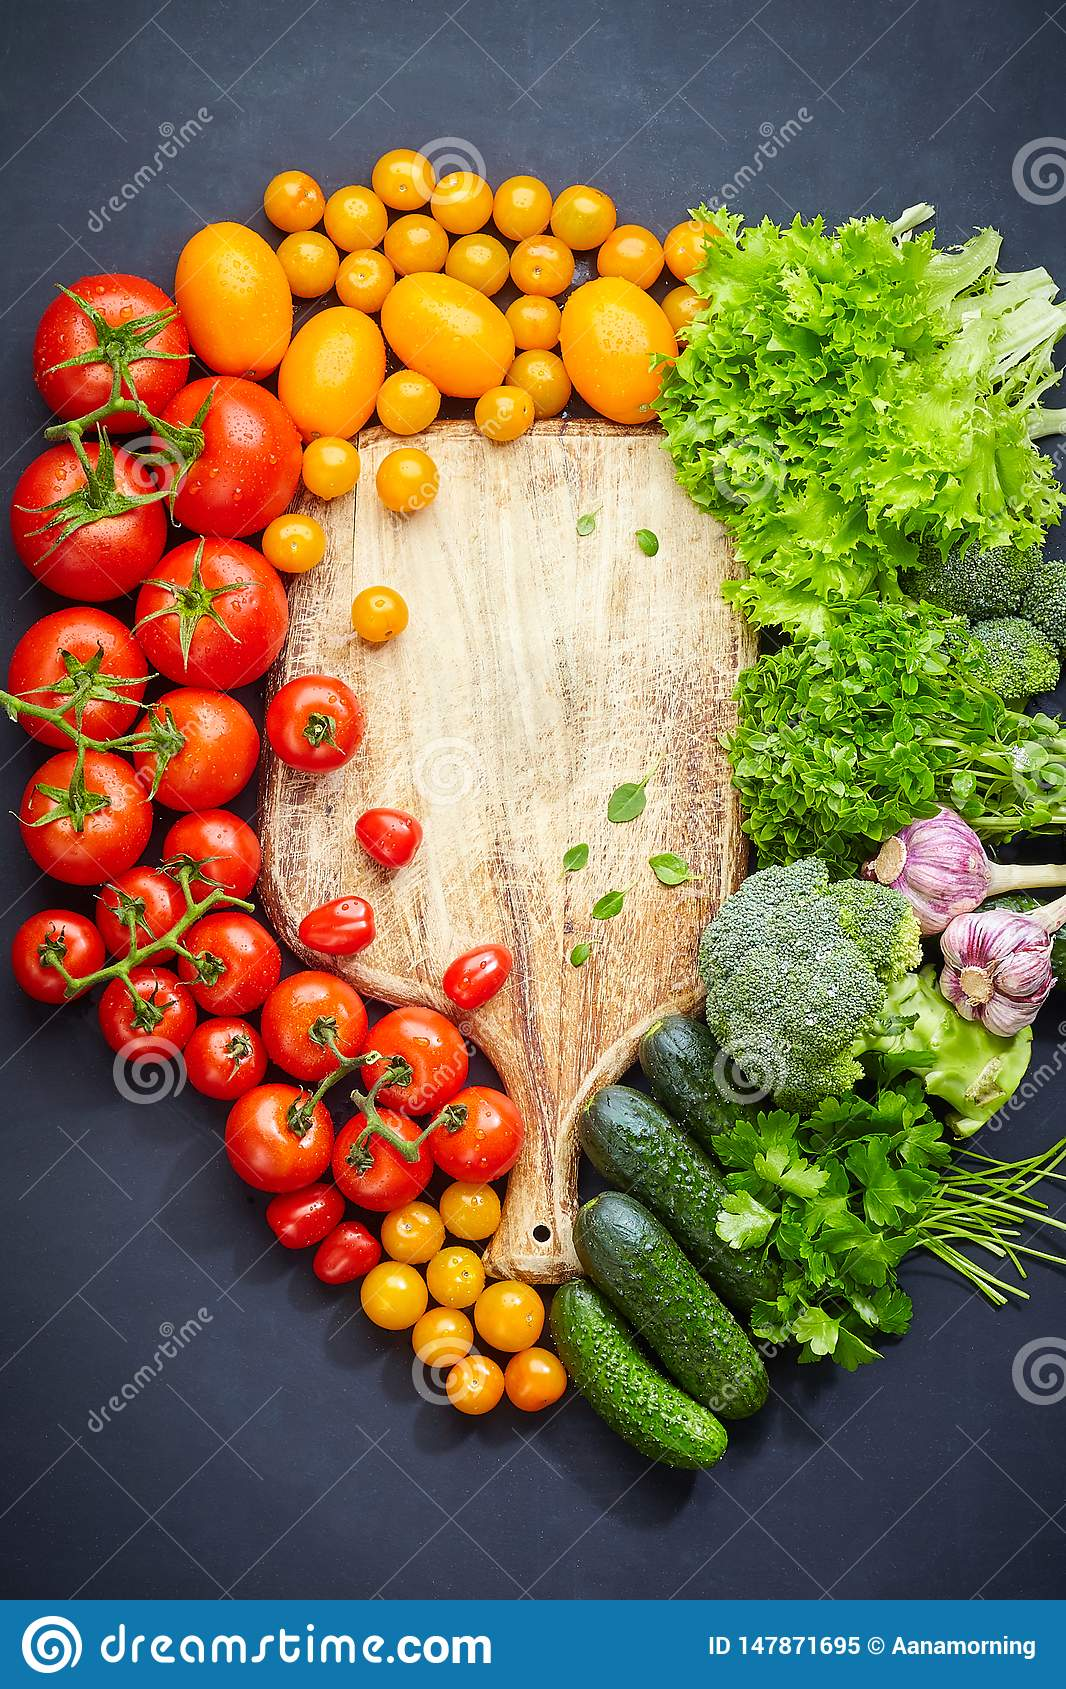 Colorful composition of fresh vegetables. Food or cooking concept. Top view